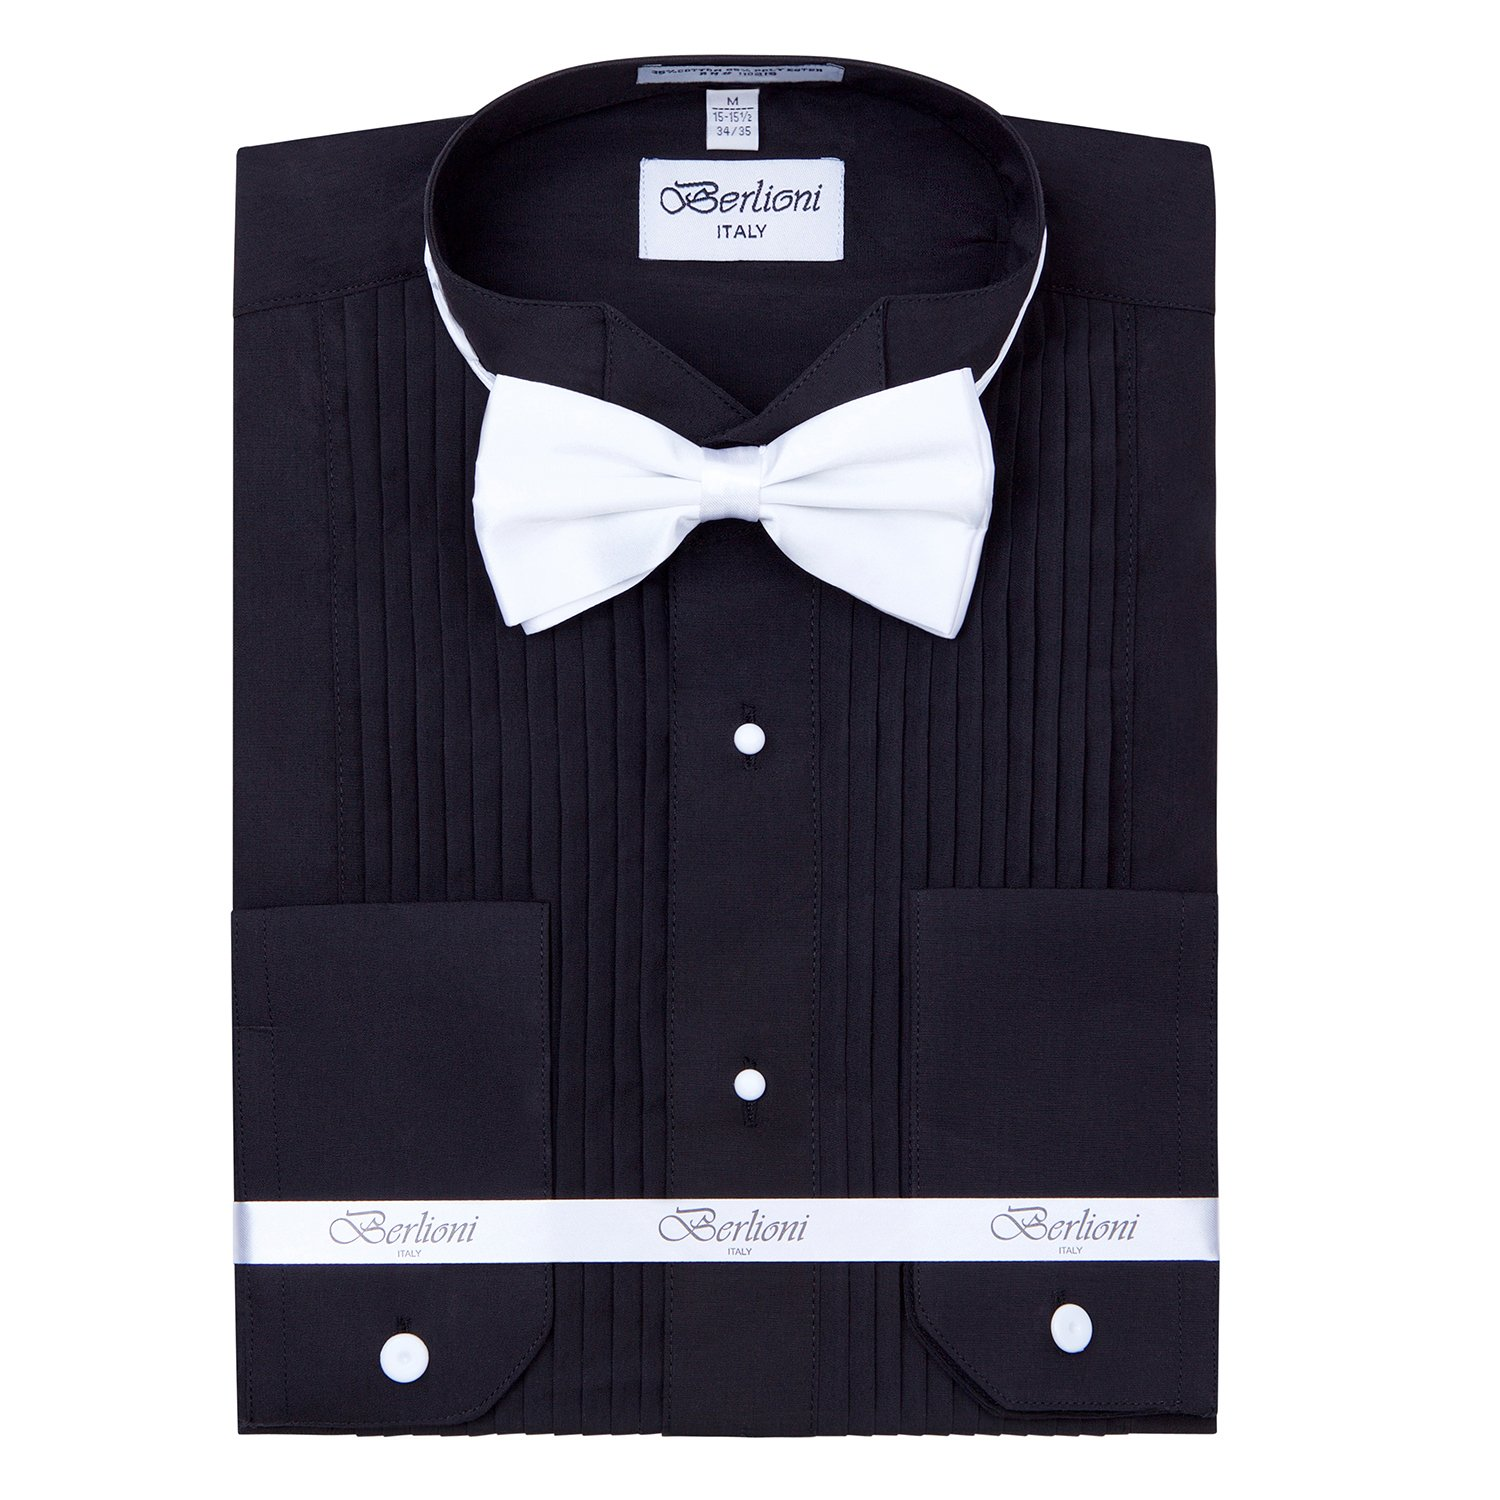 43d8d25bb This tuxedo shirt has a timeless design that any man can appreciate. It is  a Modern Fit shirt (in between a Regular Fit and Slim Fit) that features ...